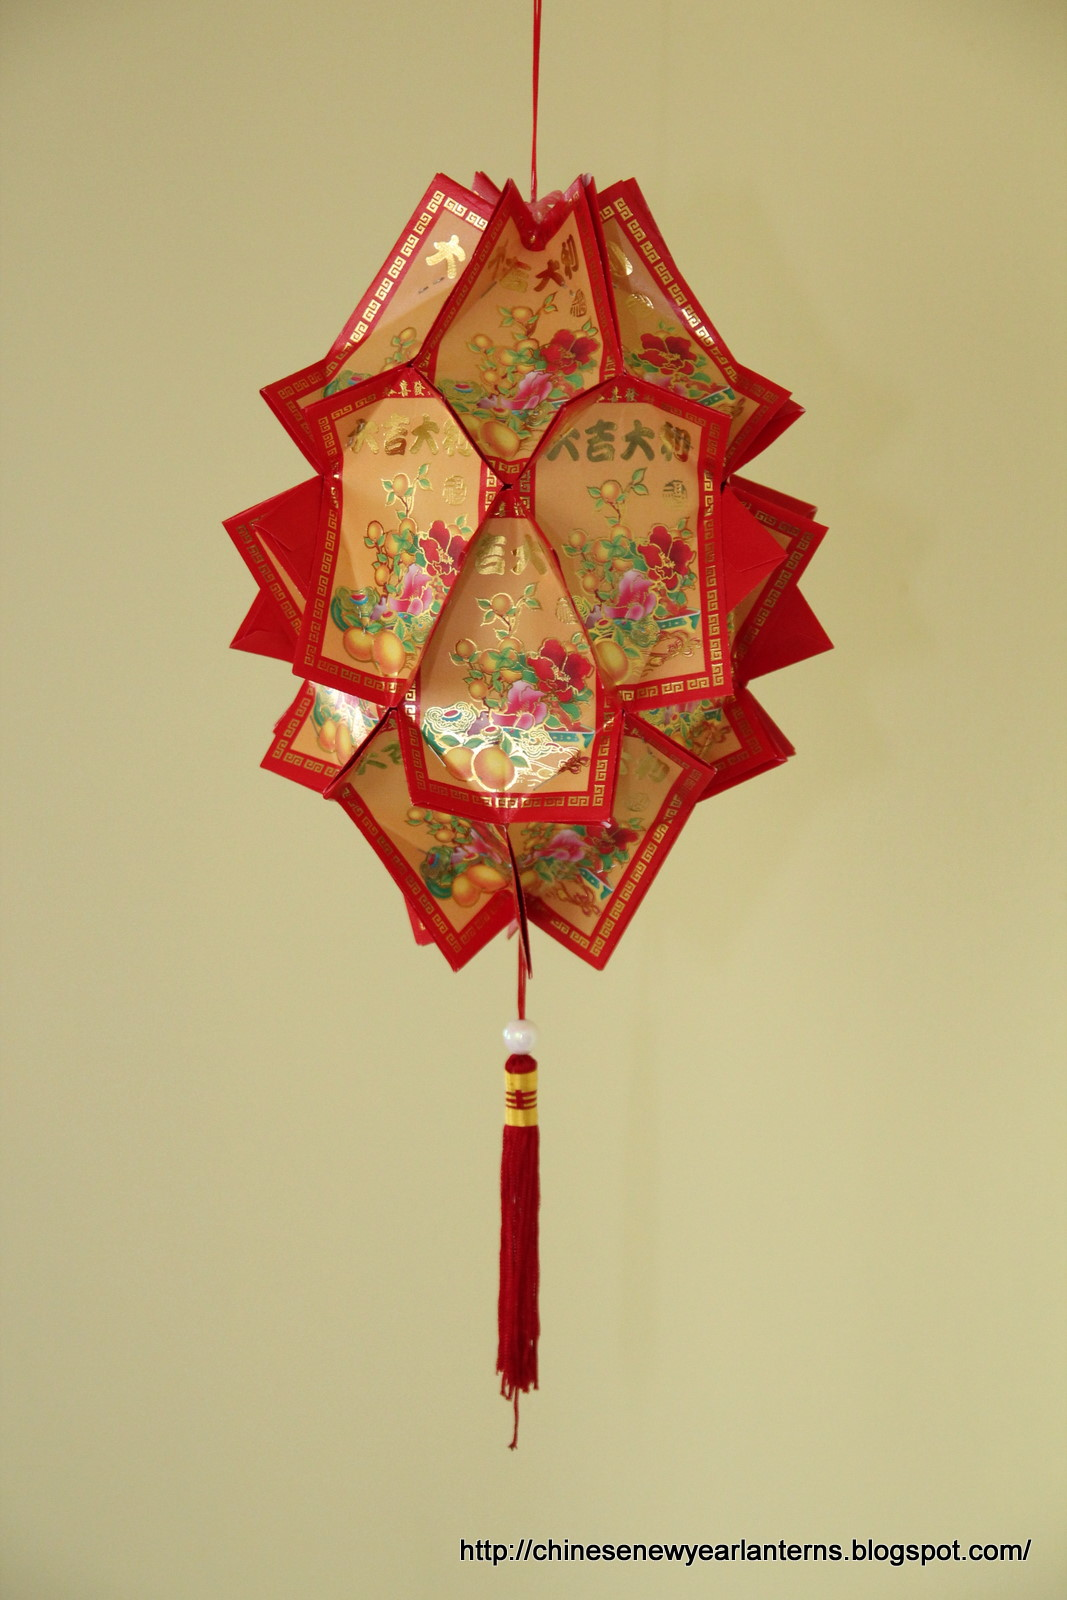 Chinese New Year Lanterns : How to make a Lamp ...